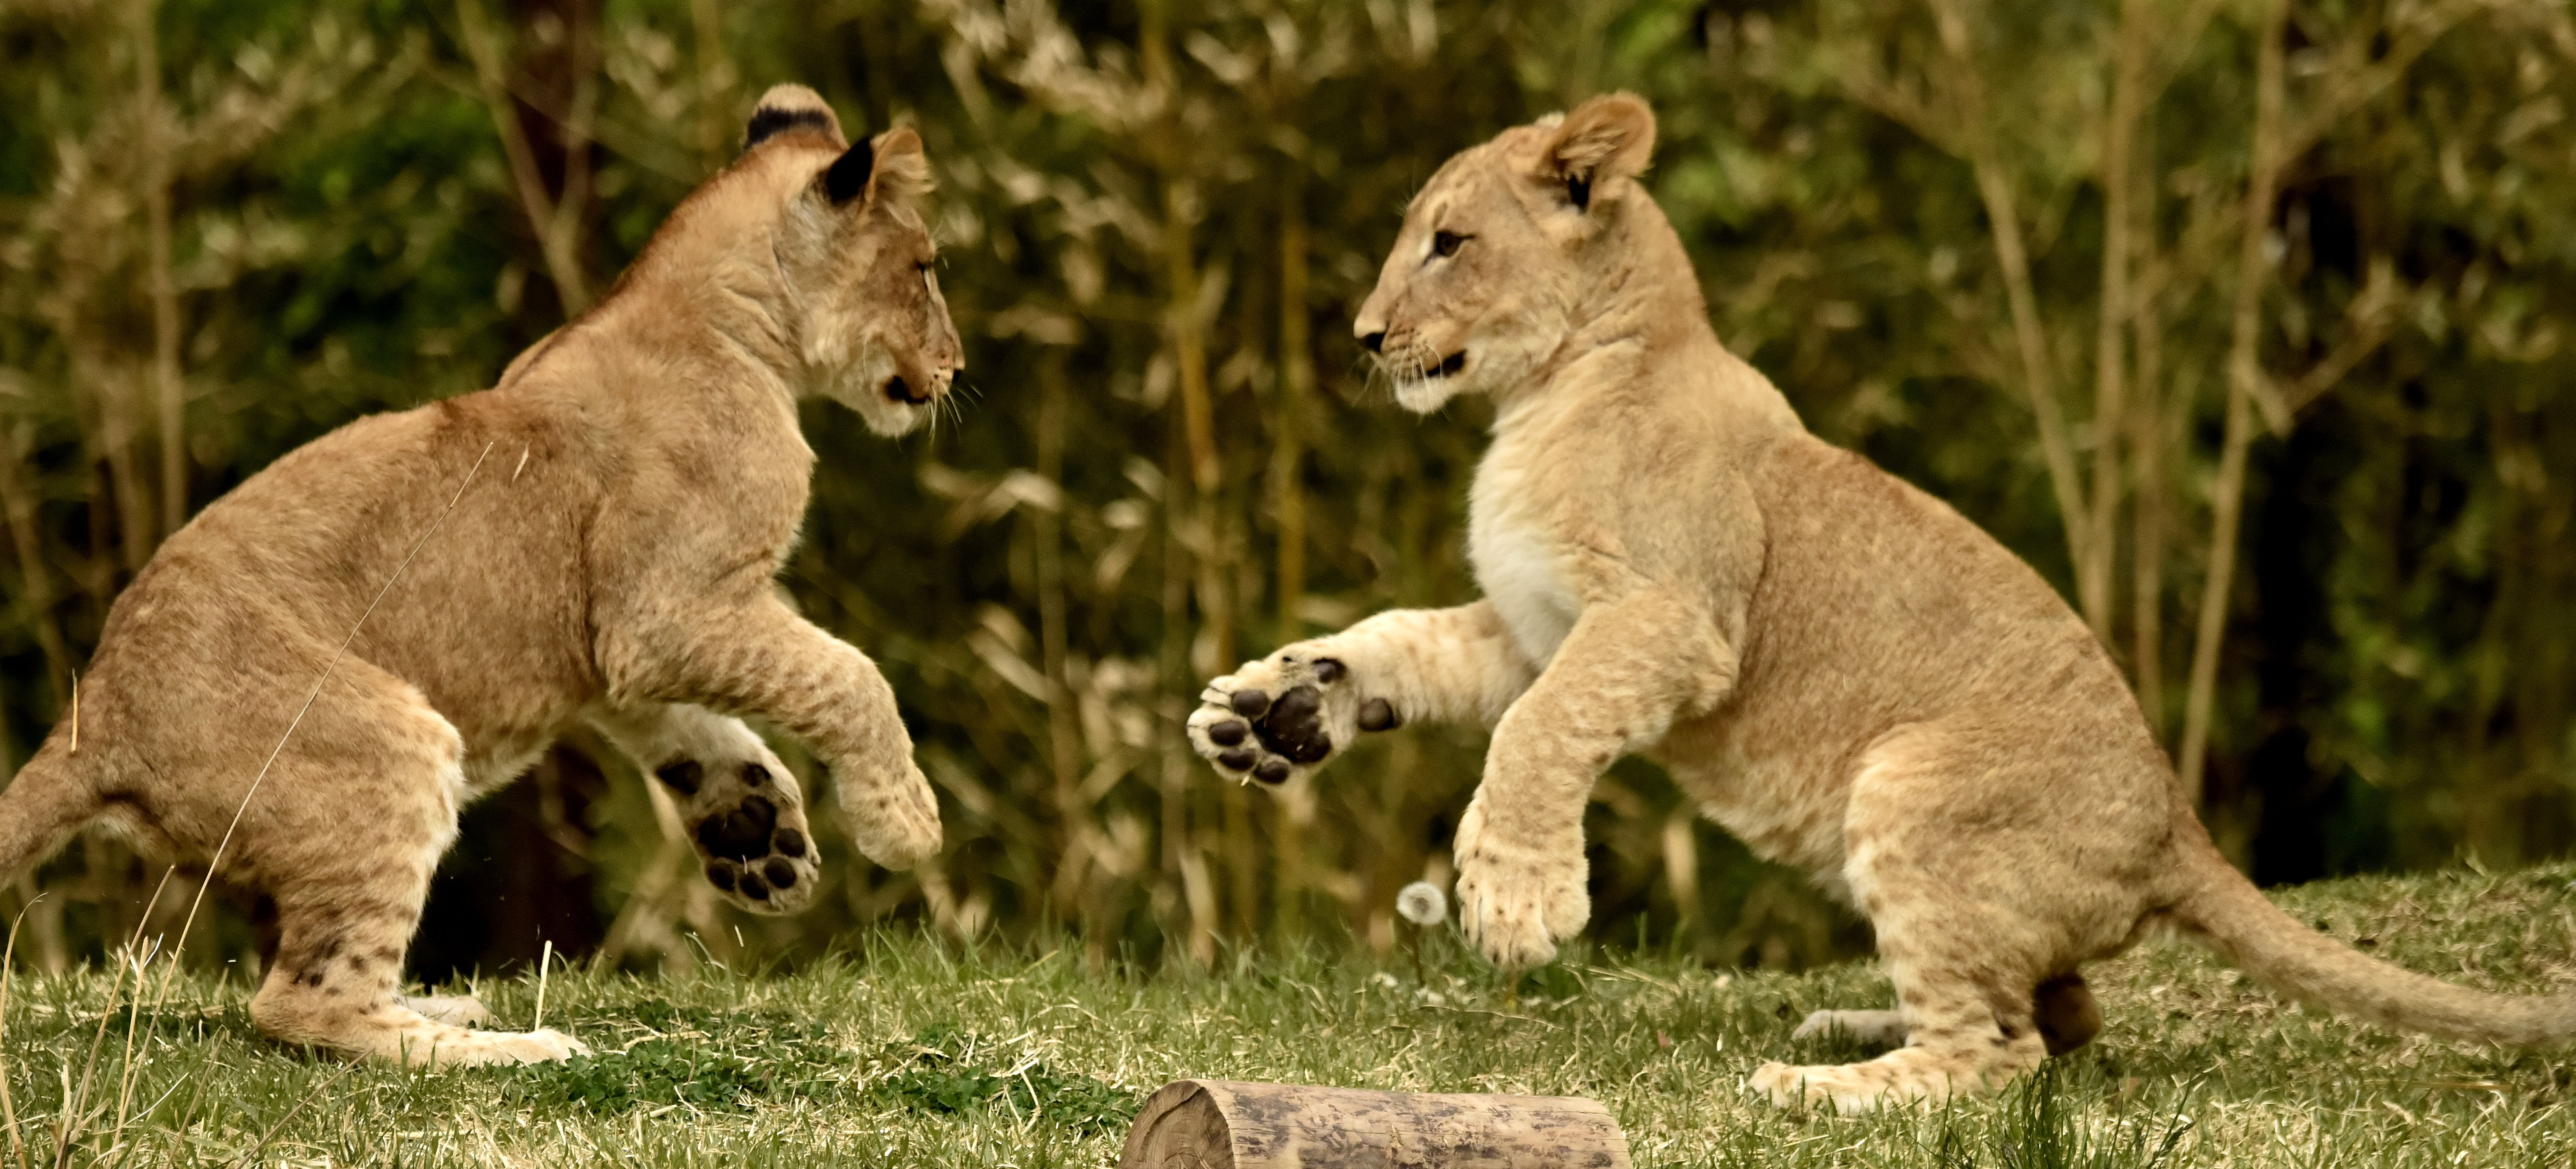 Lion cubs photo